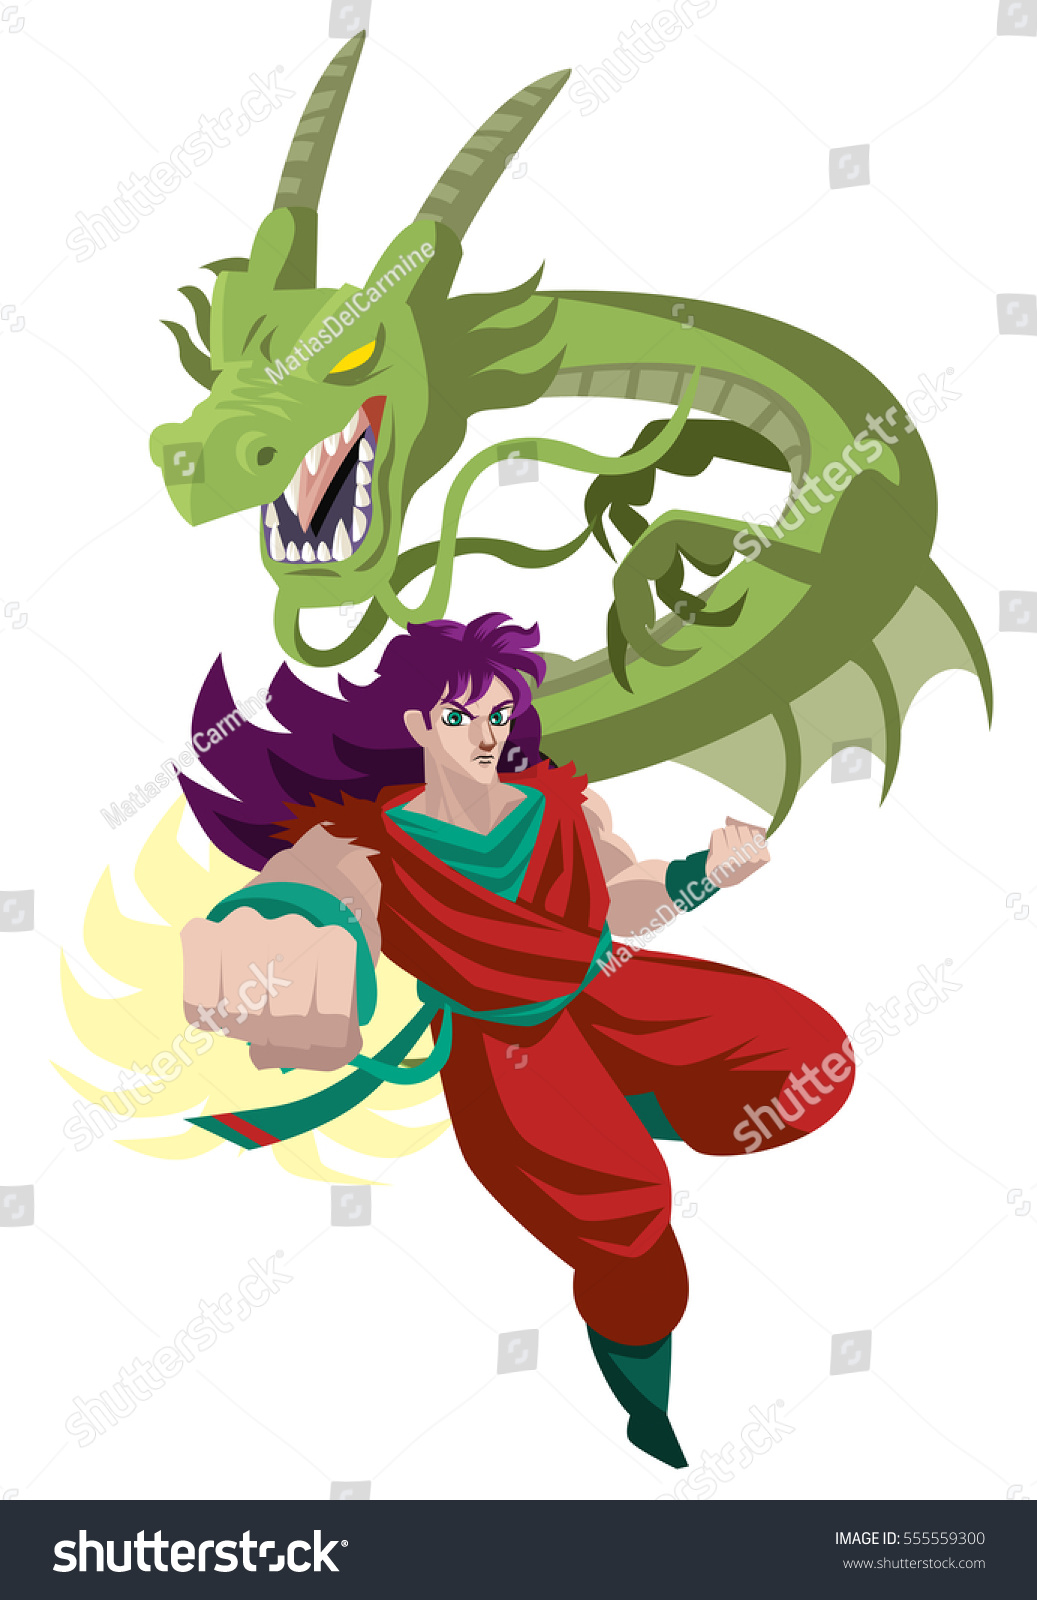 Anime Japanese Martial Arts Warrior Hero With Powerful Dragon